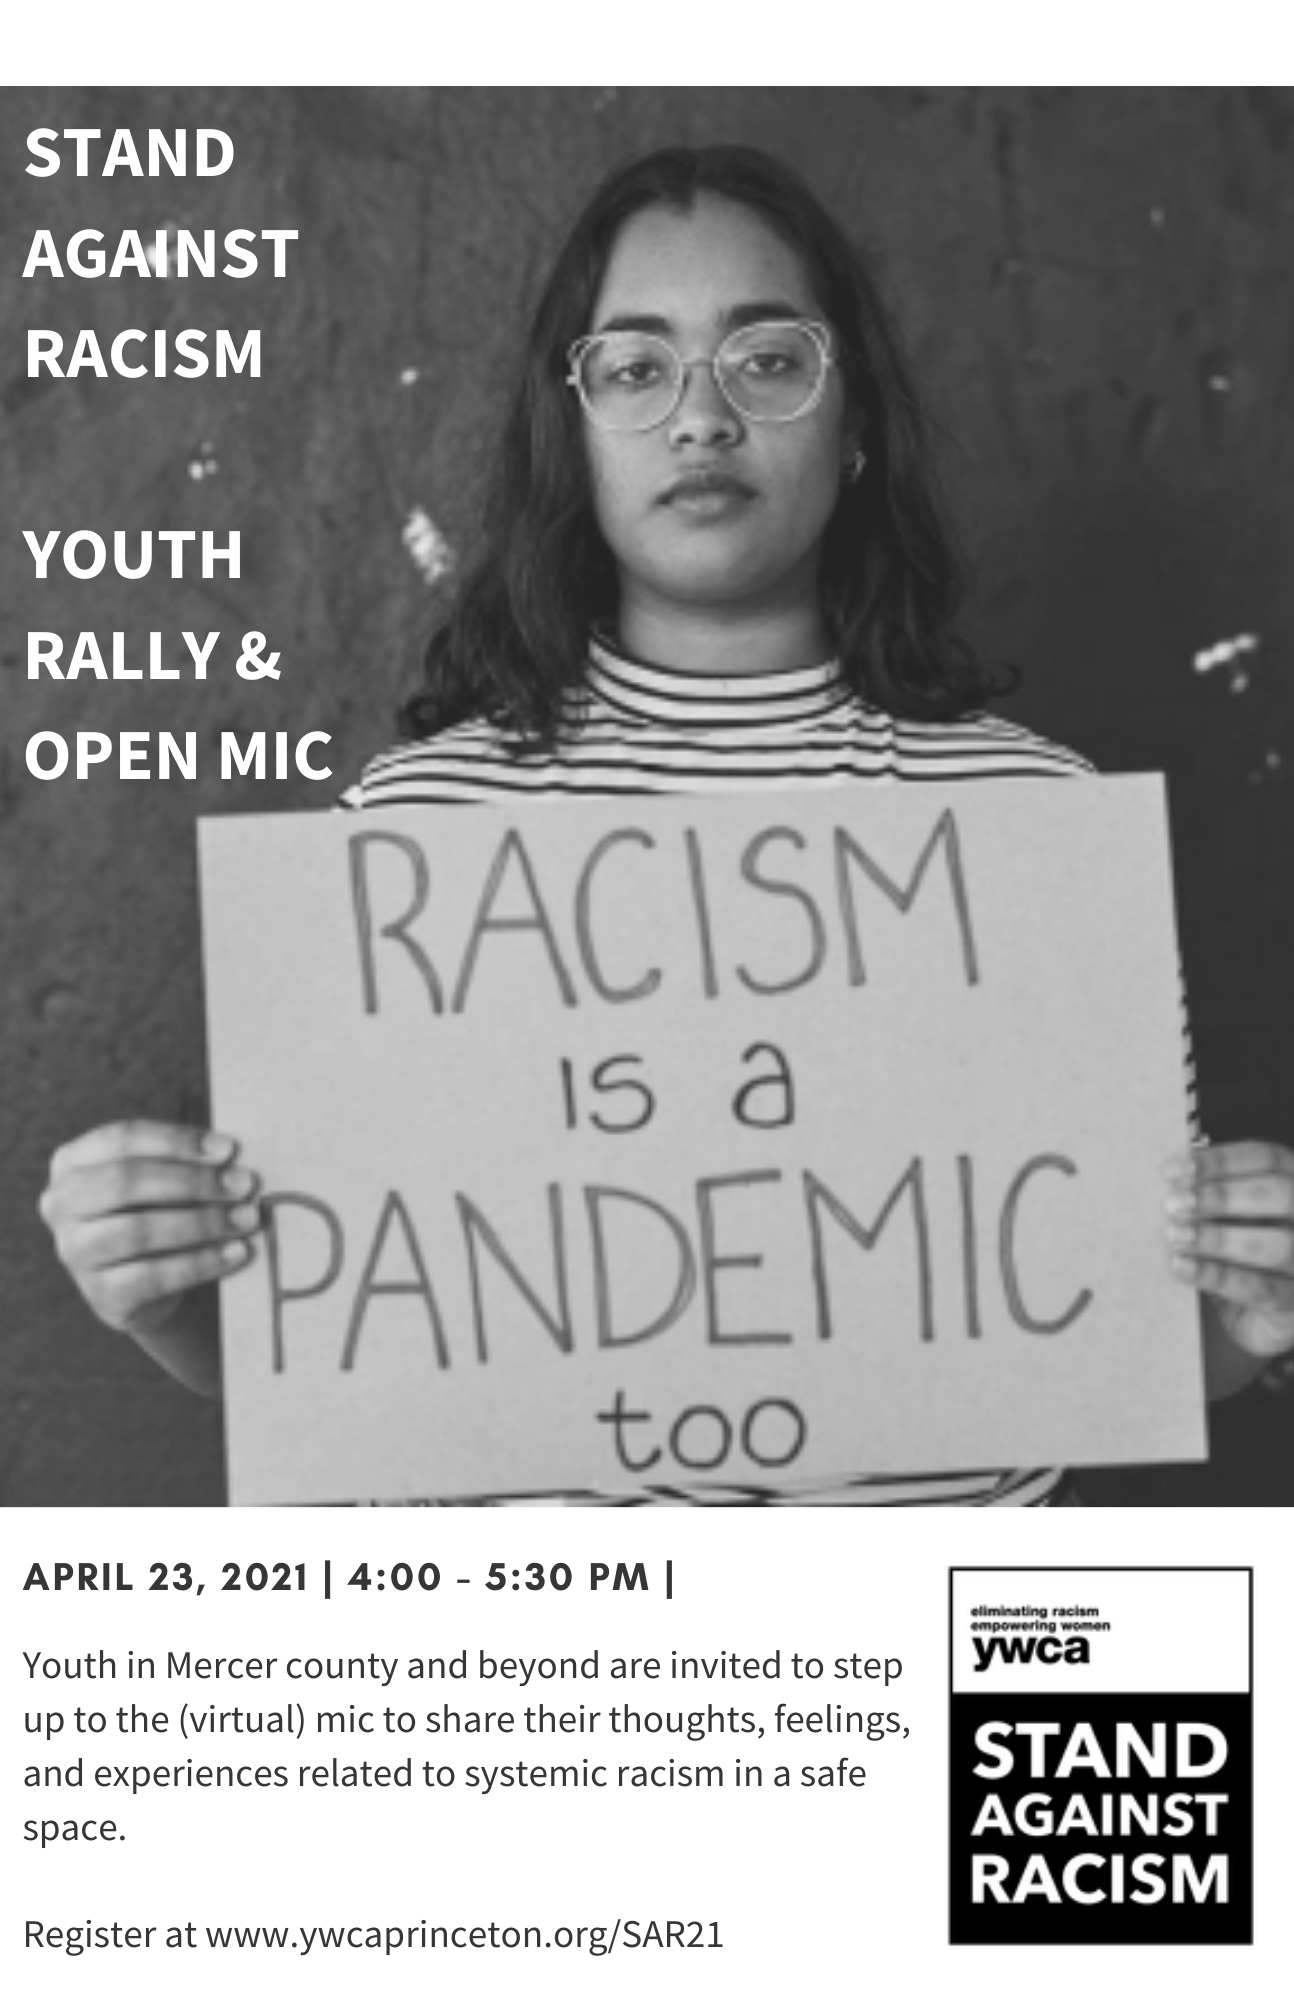 Stand Against Racism: Youth Rally and Open Mic